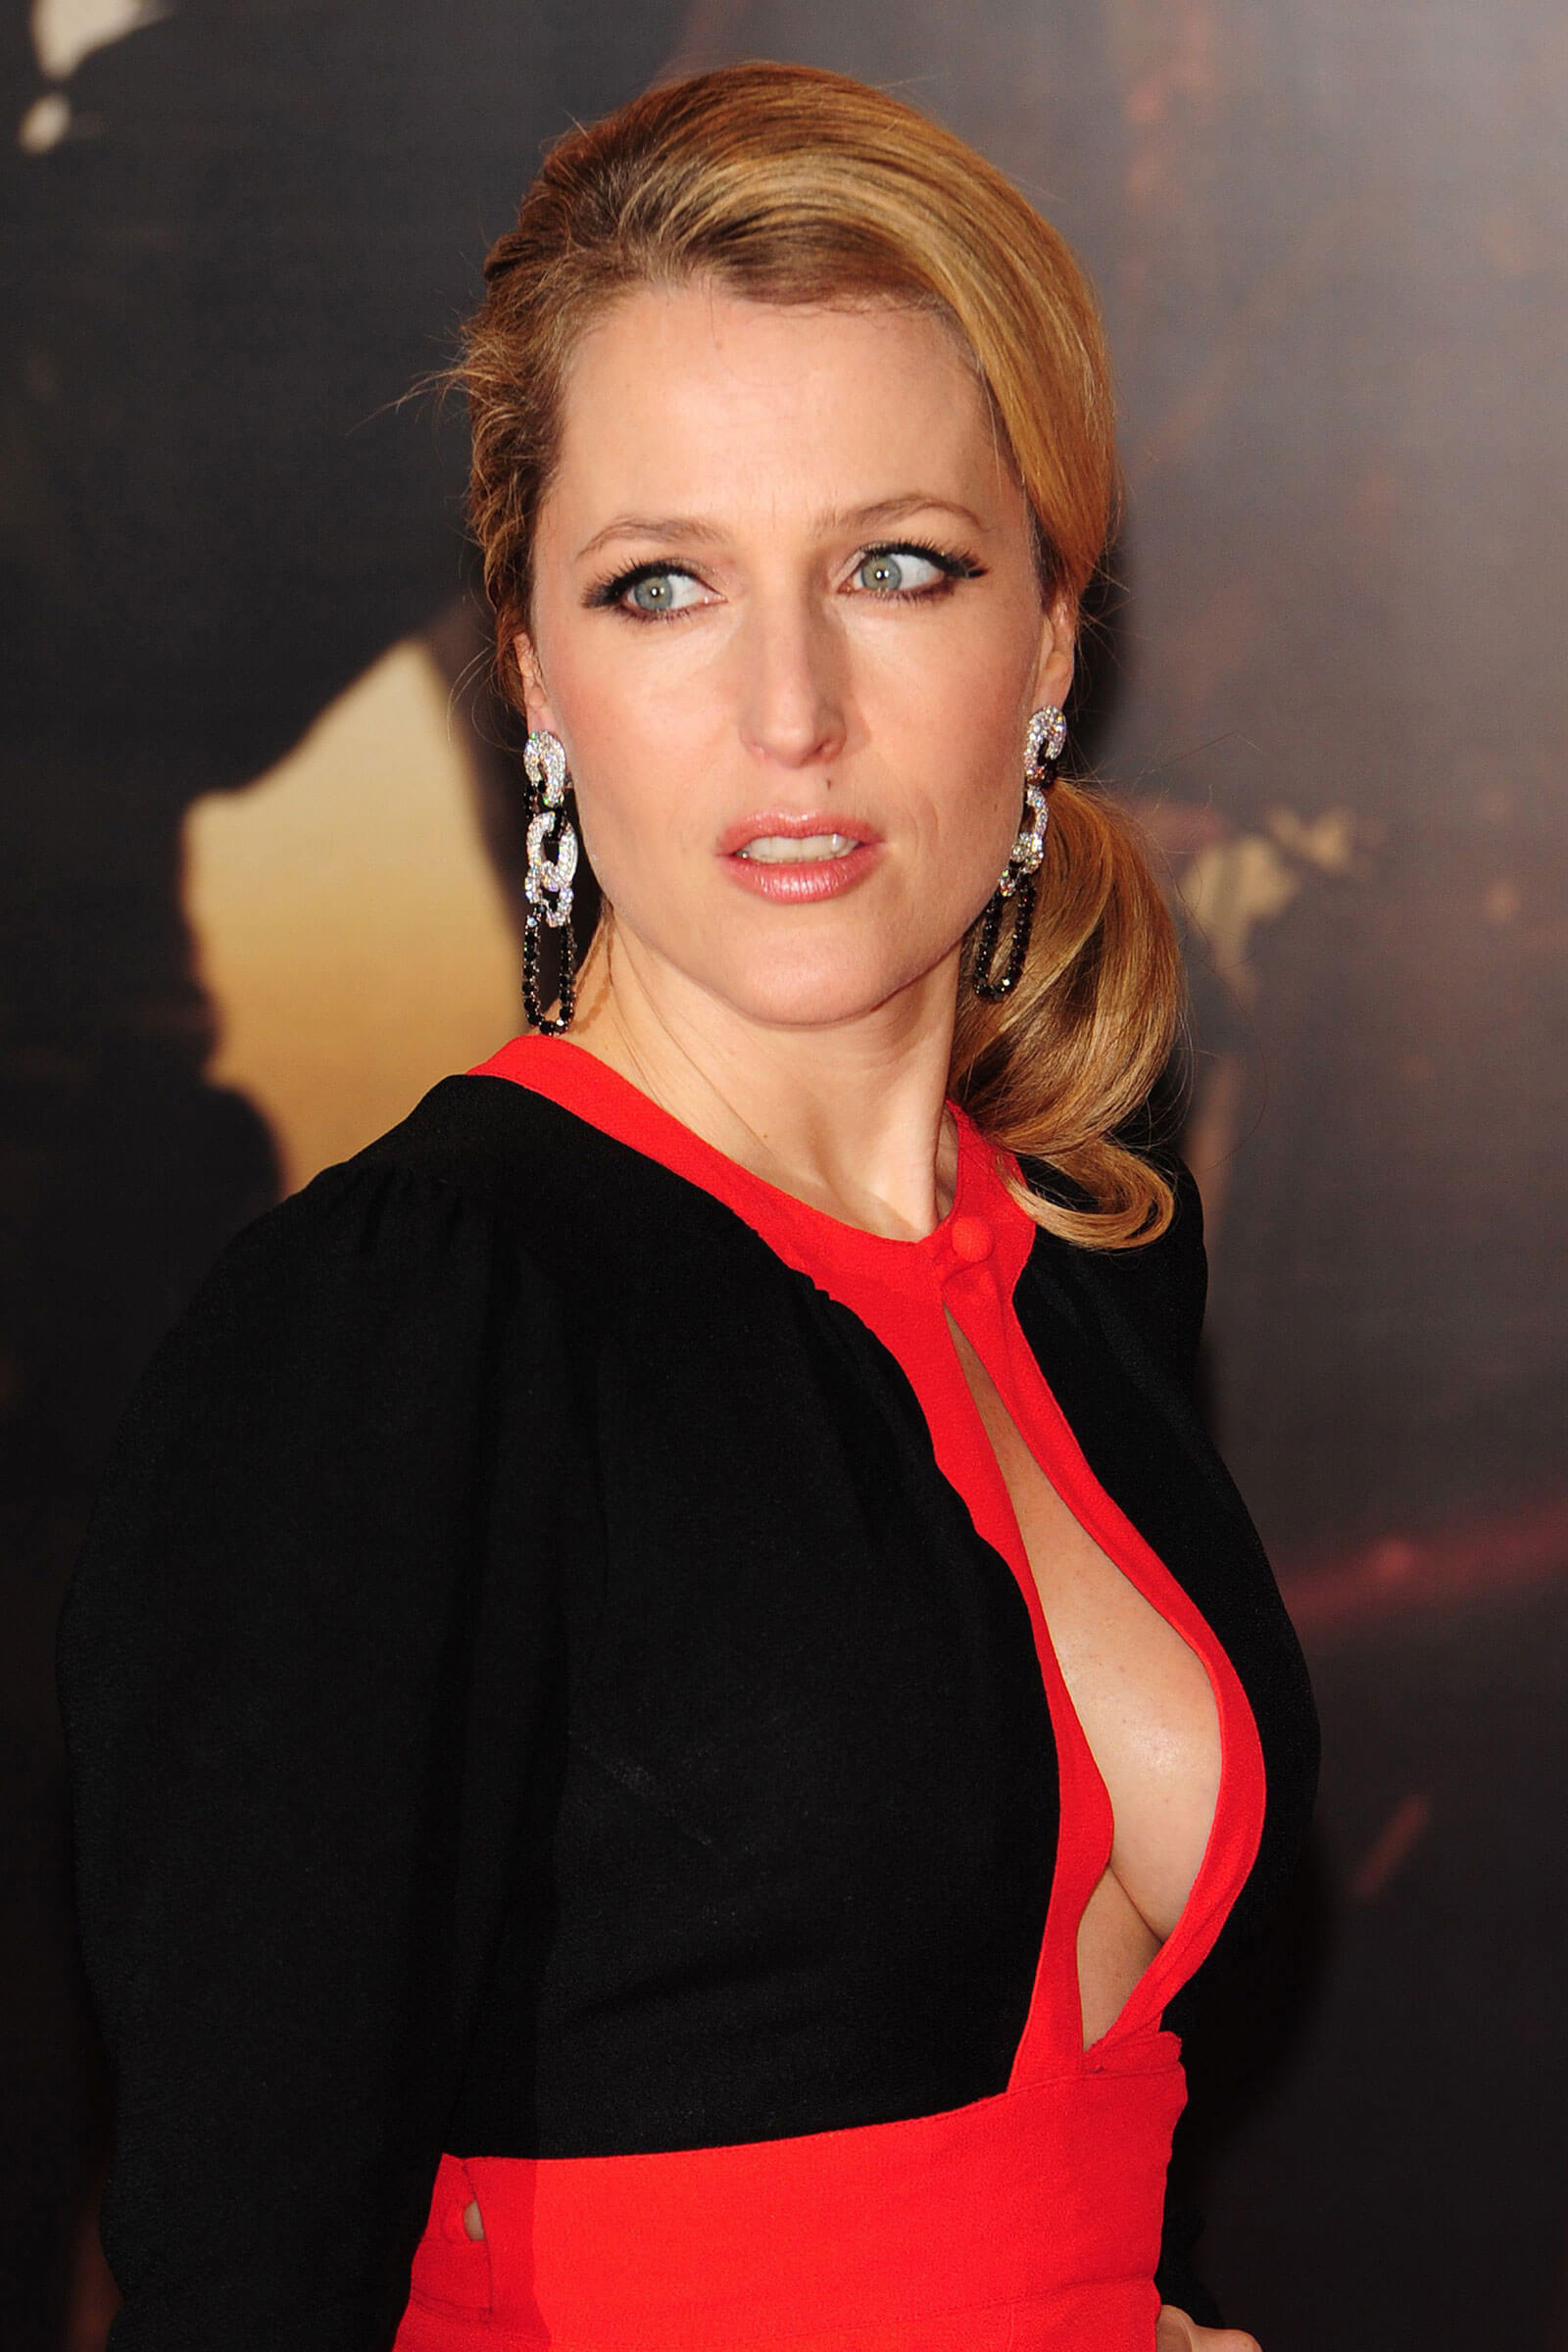 Gillian Anderson sexy side boobs pics (2)